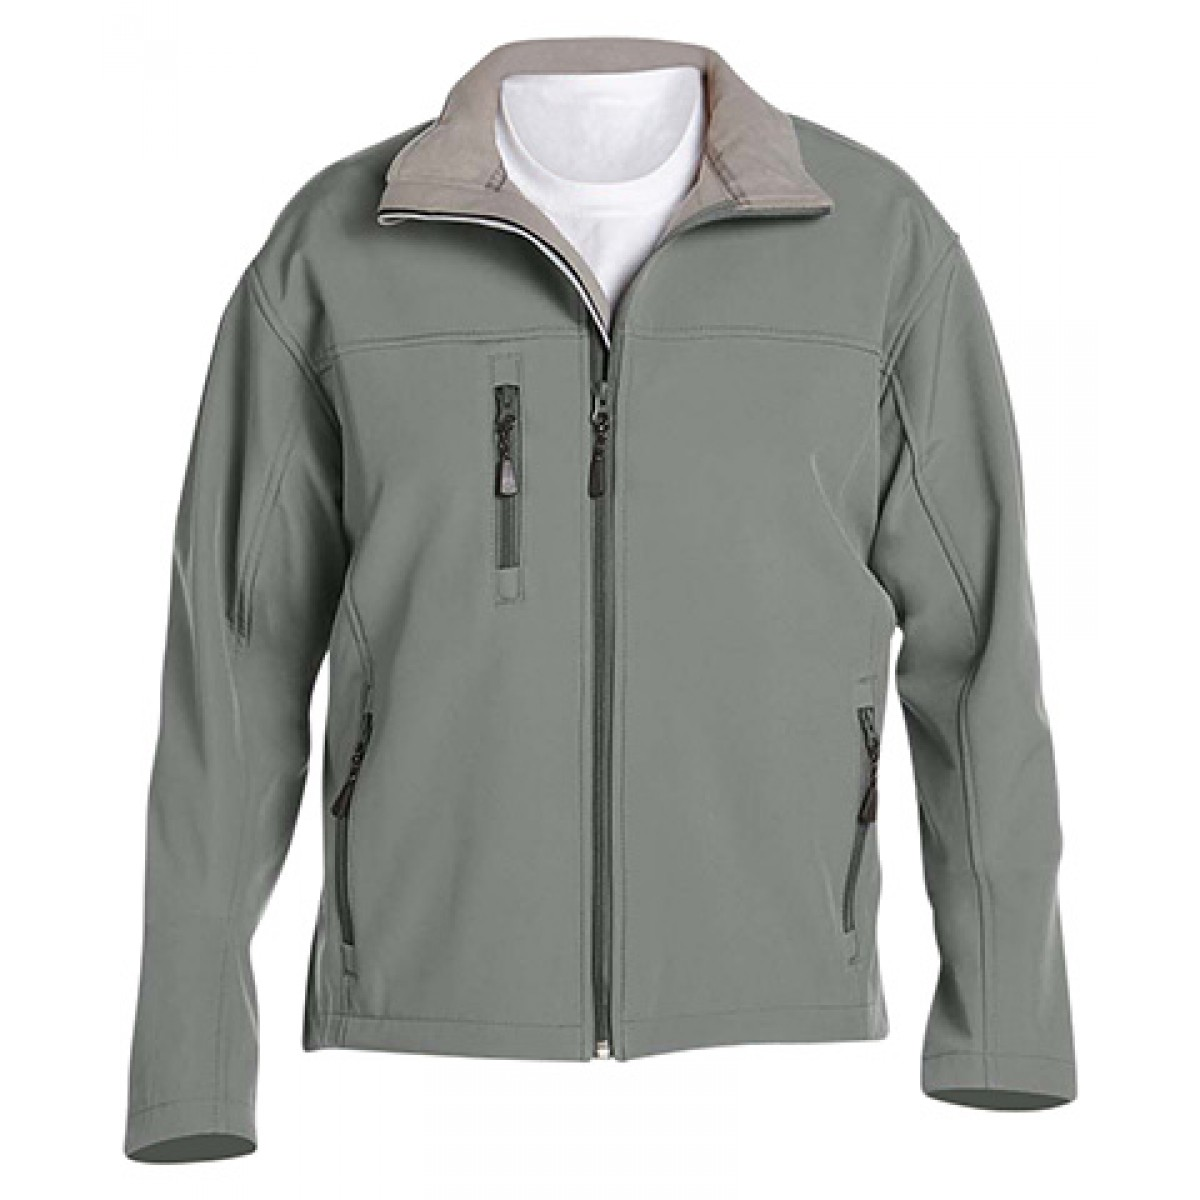 Men's Soft Shell Jacket-Charocal-L